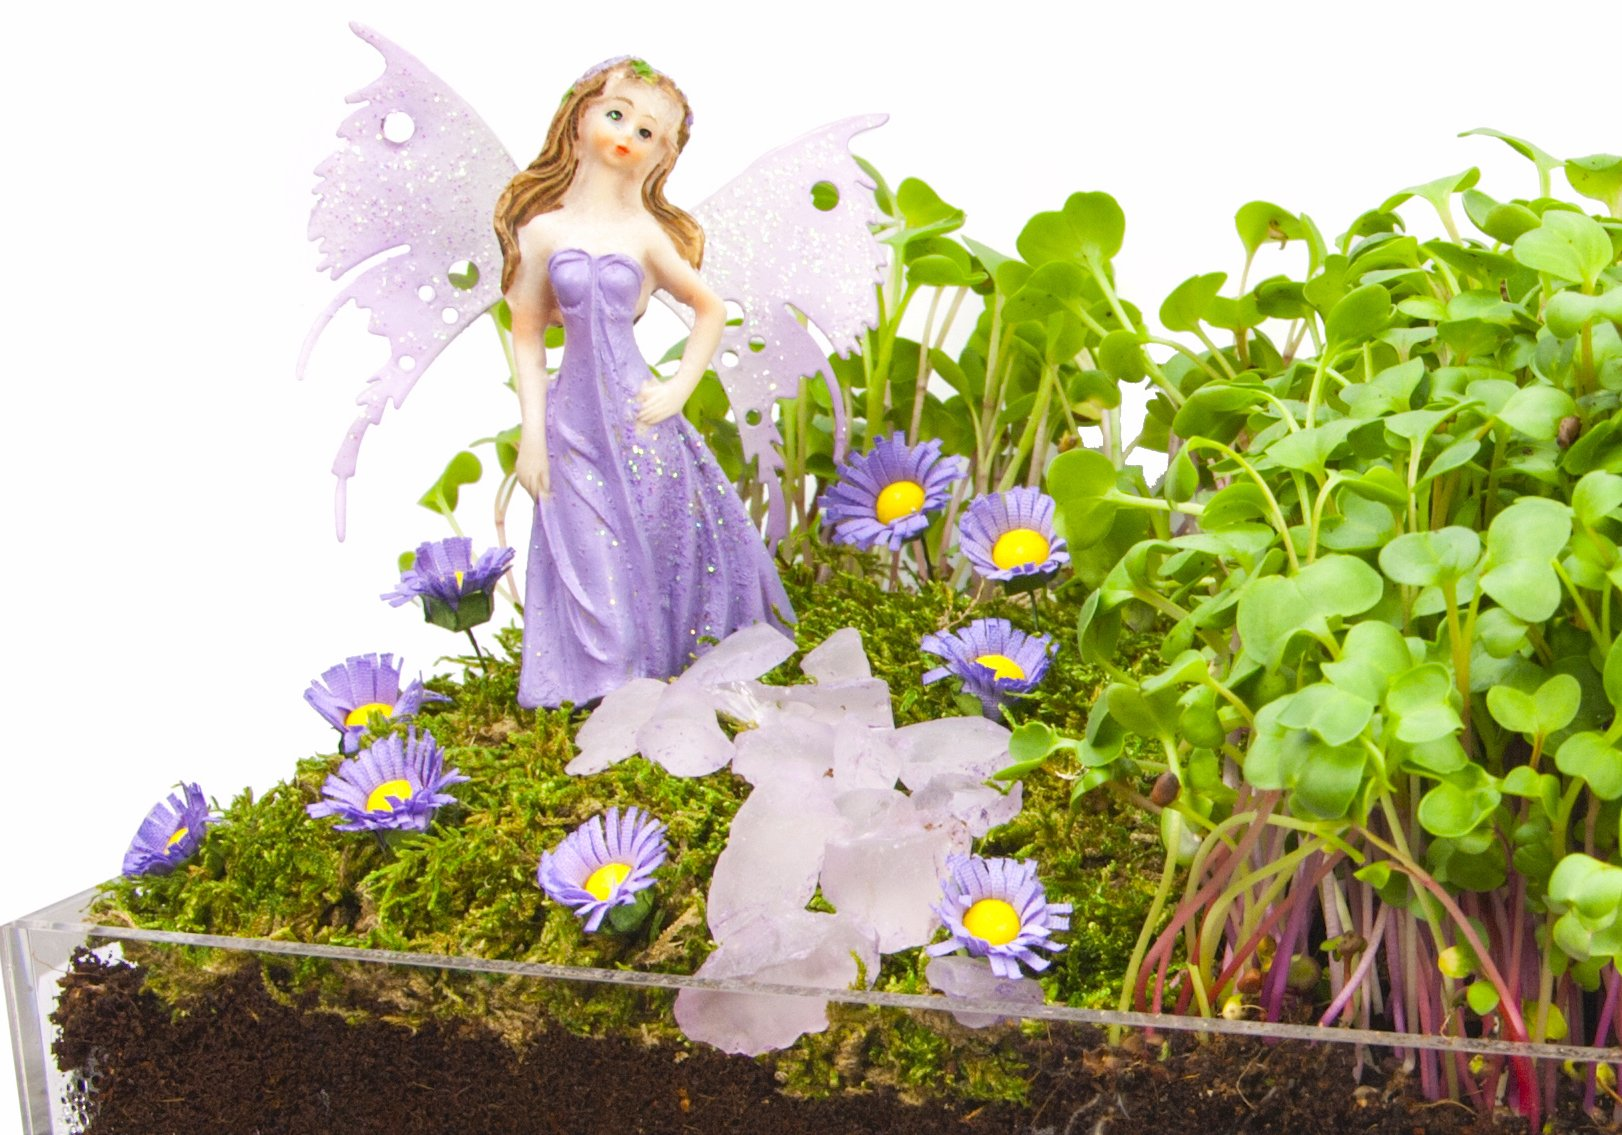 Window Garden Edible Fairy Garden Kit with an Enchanting Fairytale and Accessories by Window Garden (Image #1)